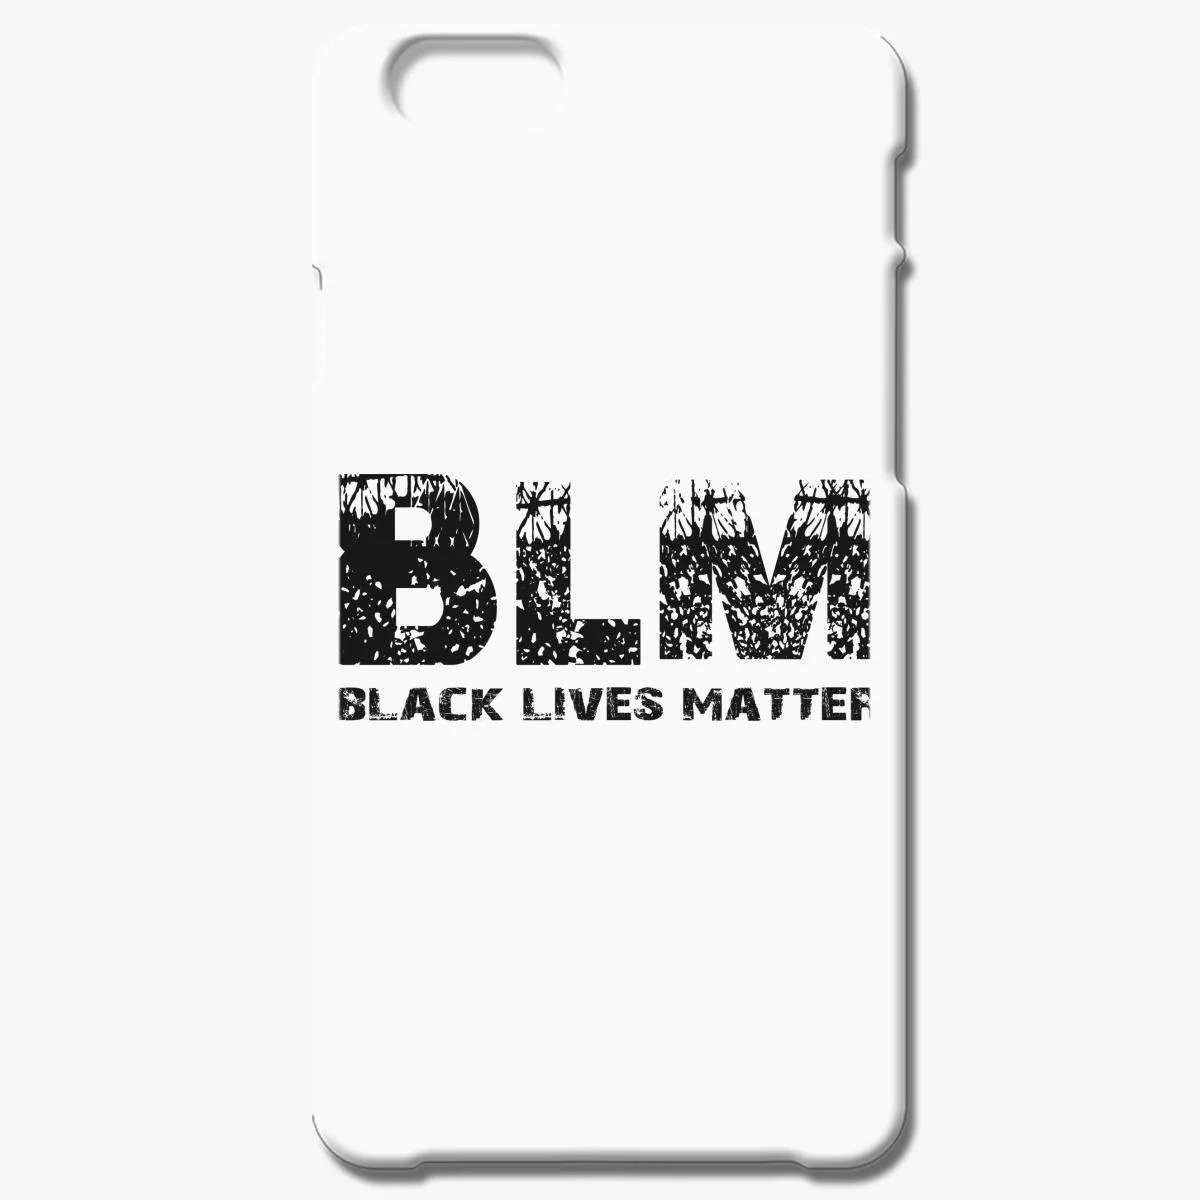 Blm Black Lives Matter Iphone 6 6s Plus Case